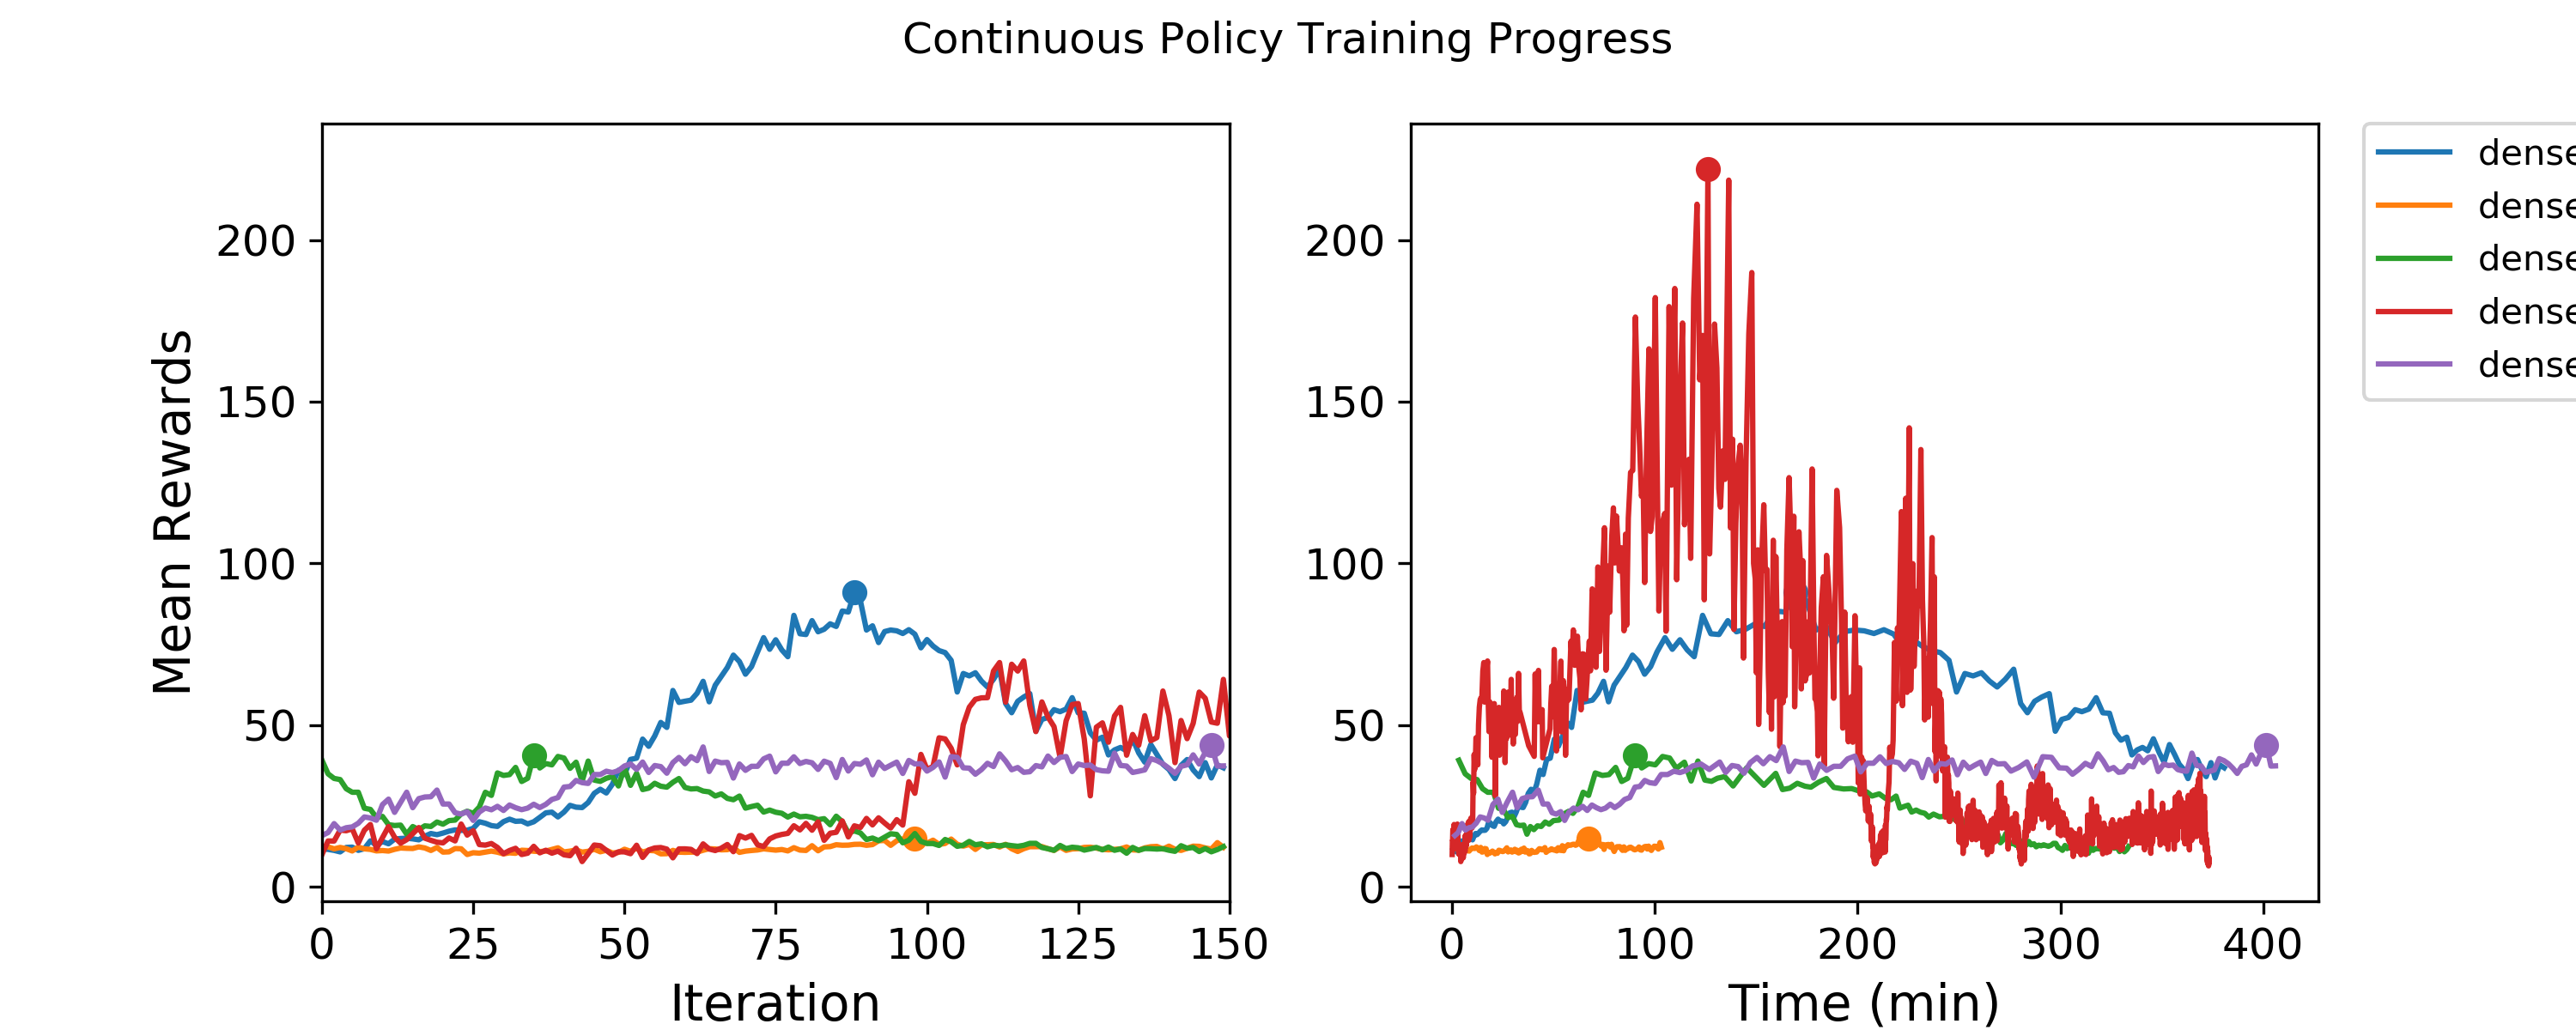 images/continuous_policy_training.png